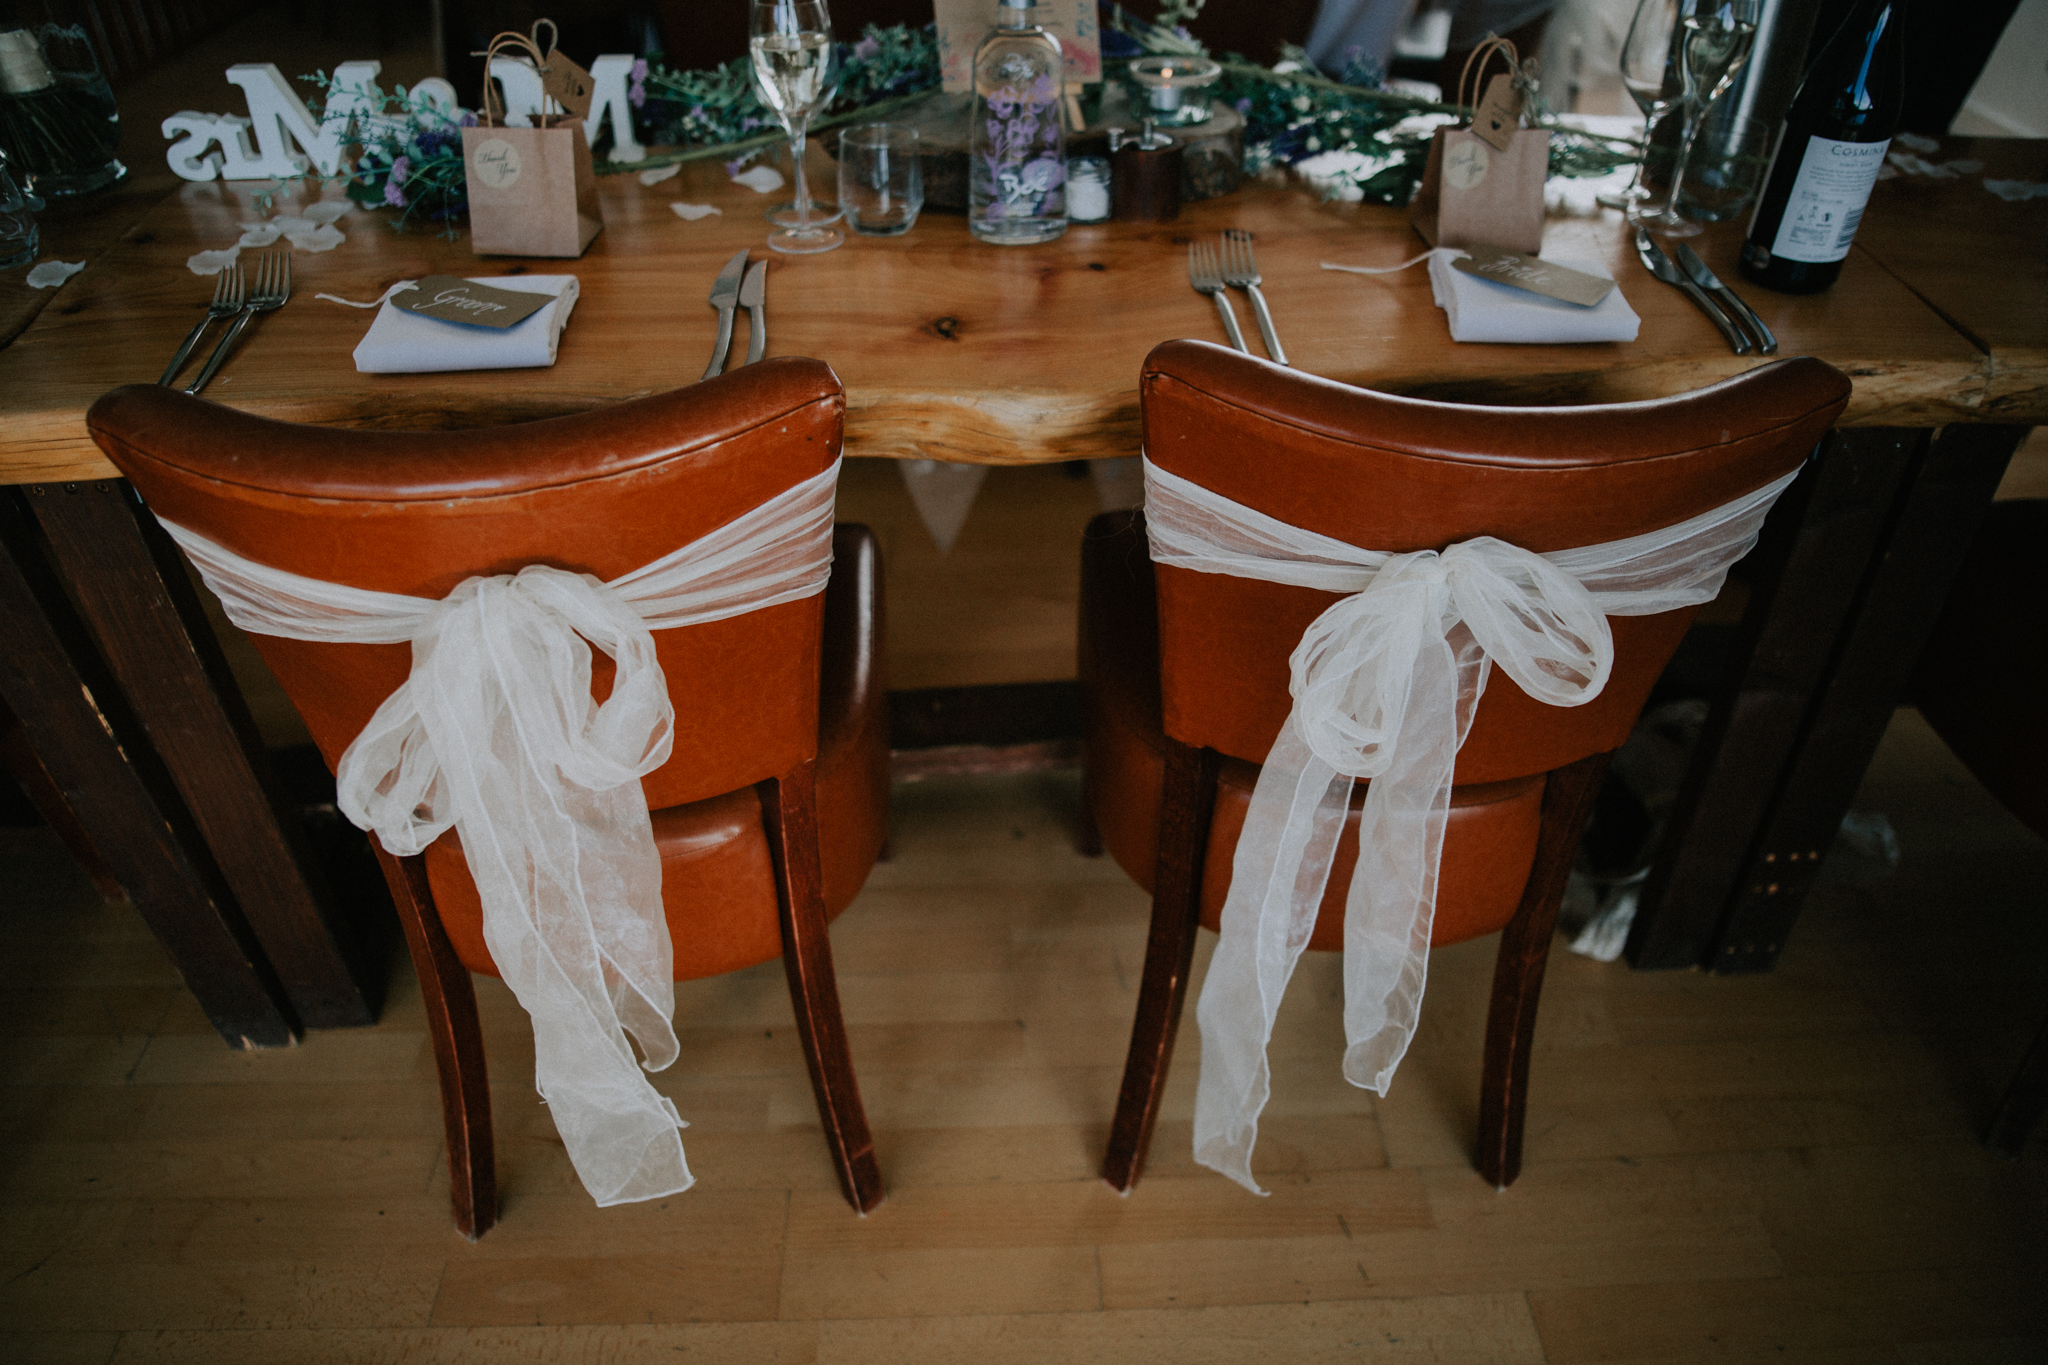 The rustic and creative table decor at Venachar Lochside